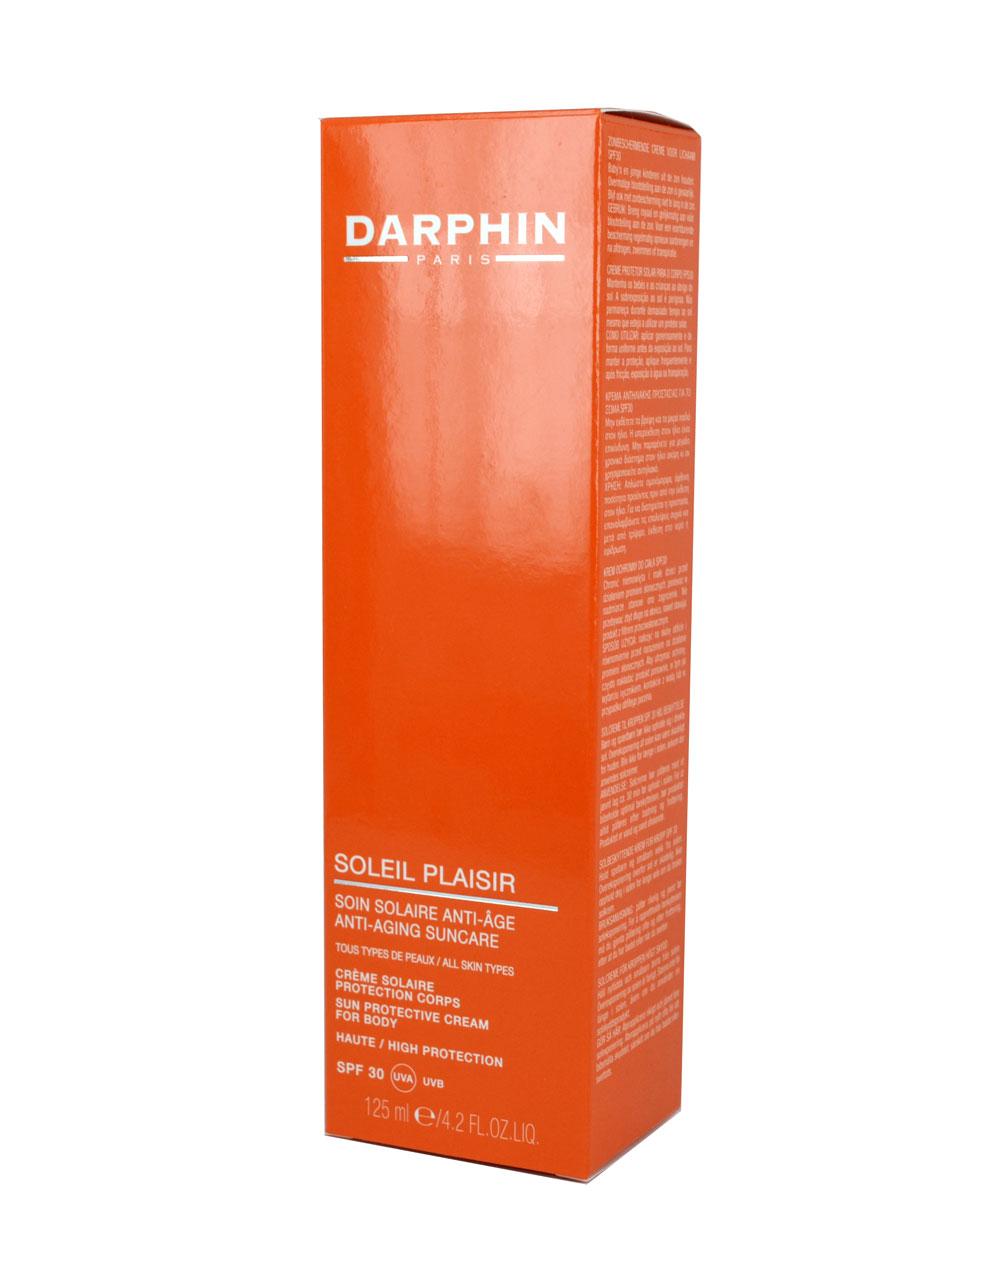 Darphin Soleil Plaisir Suncare Protective Cream for body SPF30 125 ml